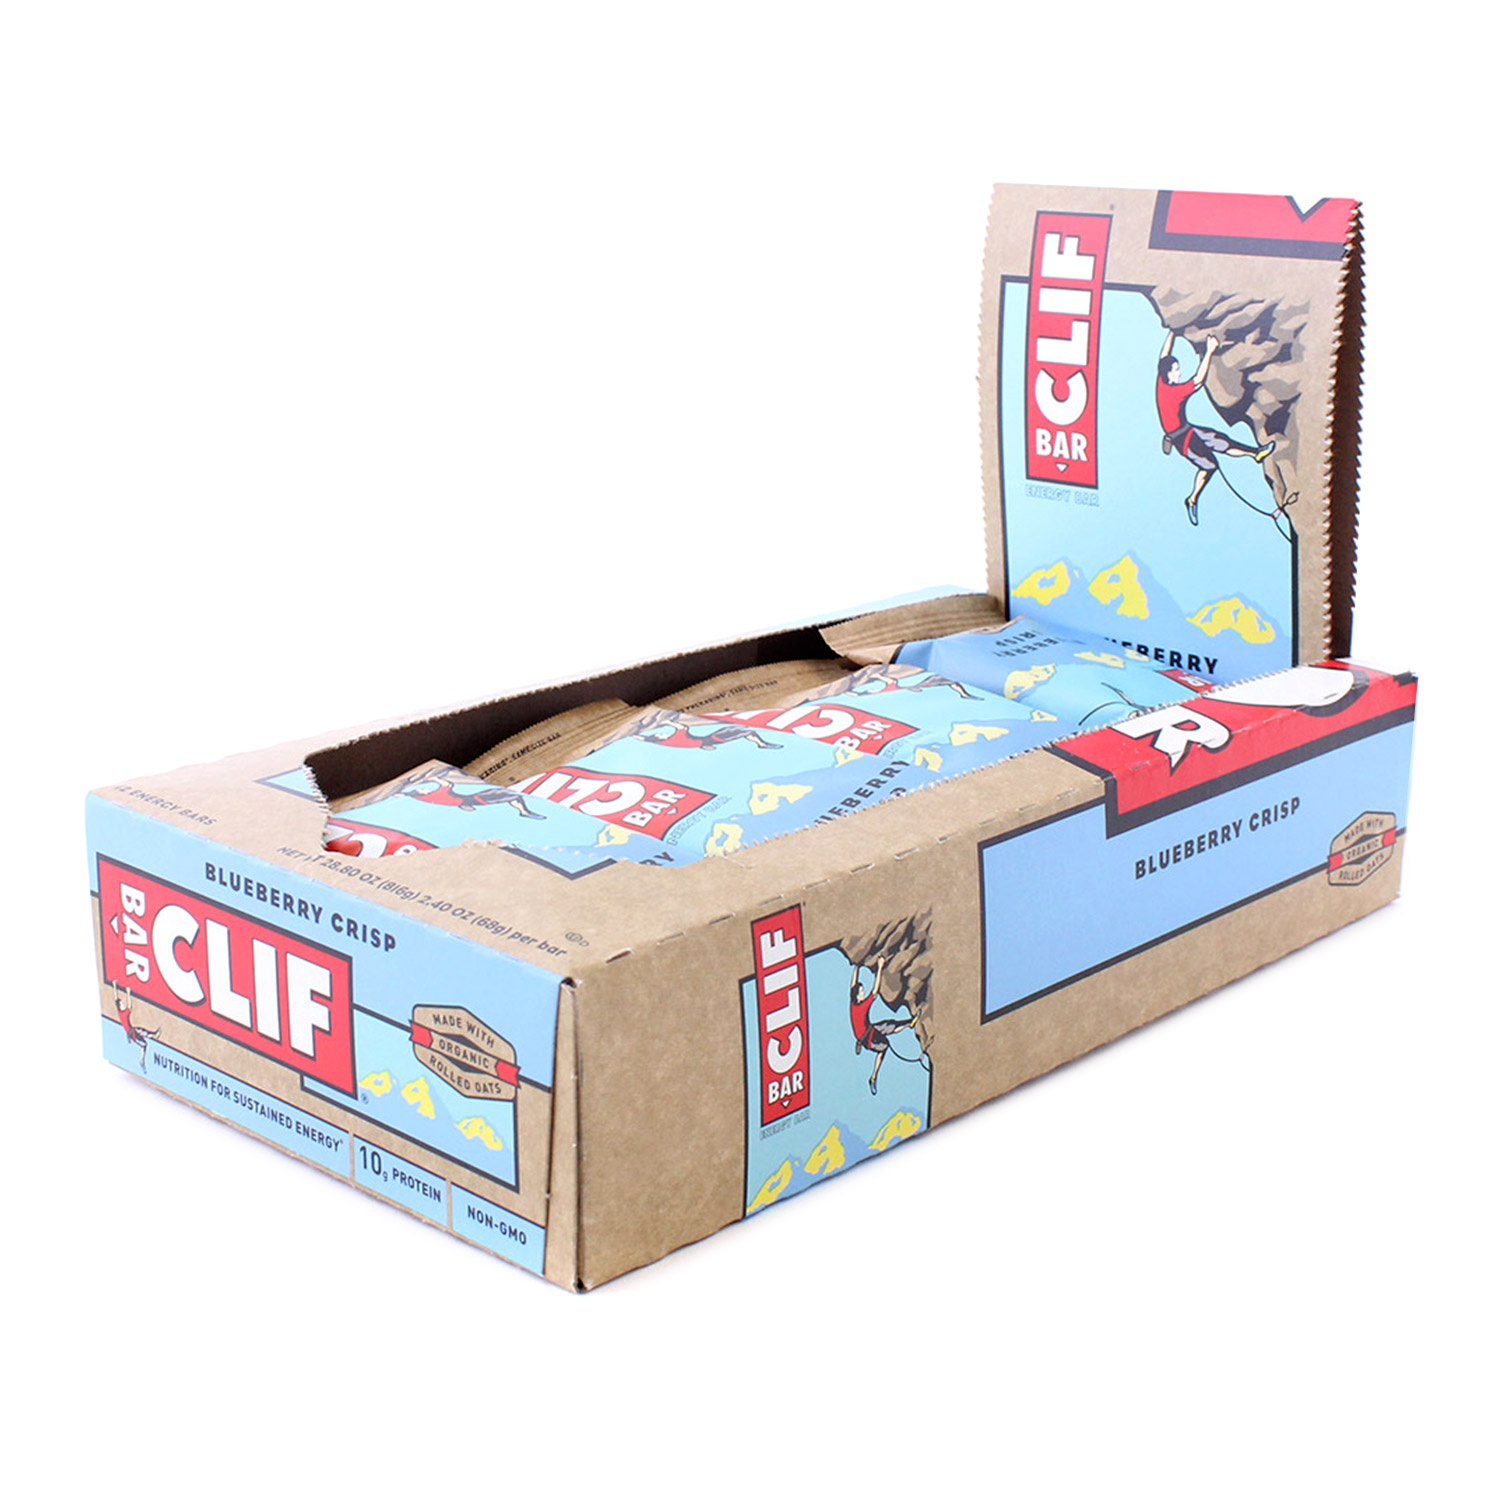 Clif Bar, Blueberry Crisp (Case)